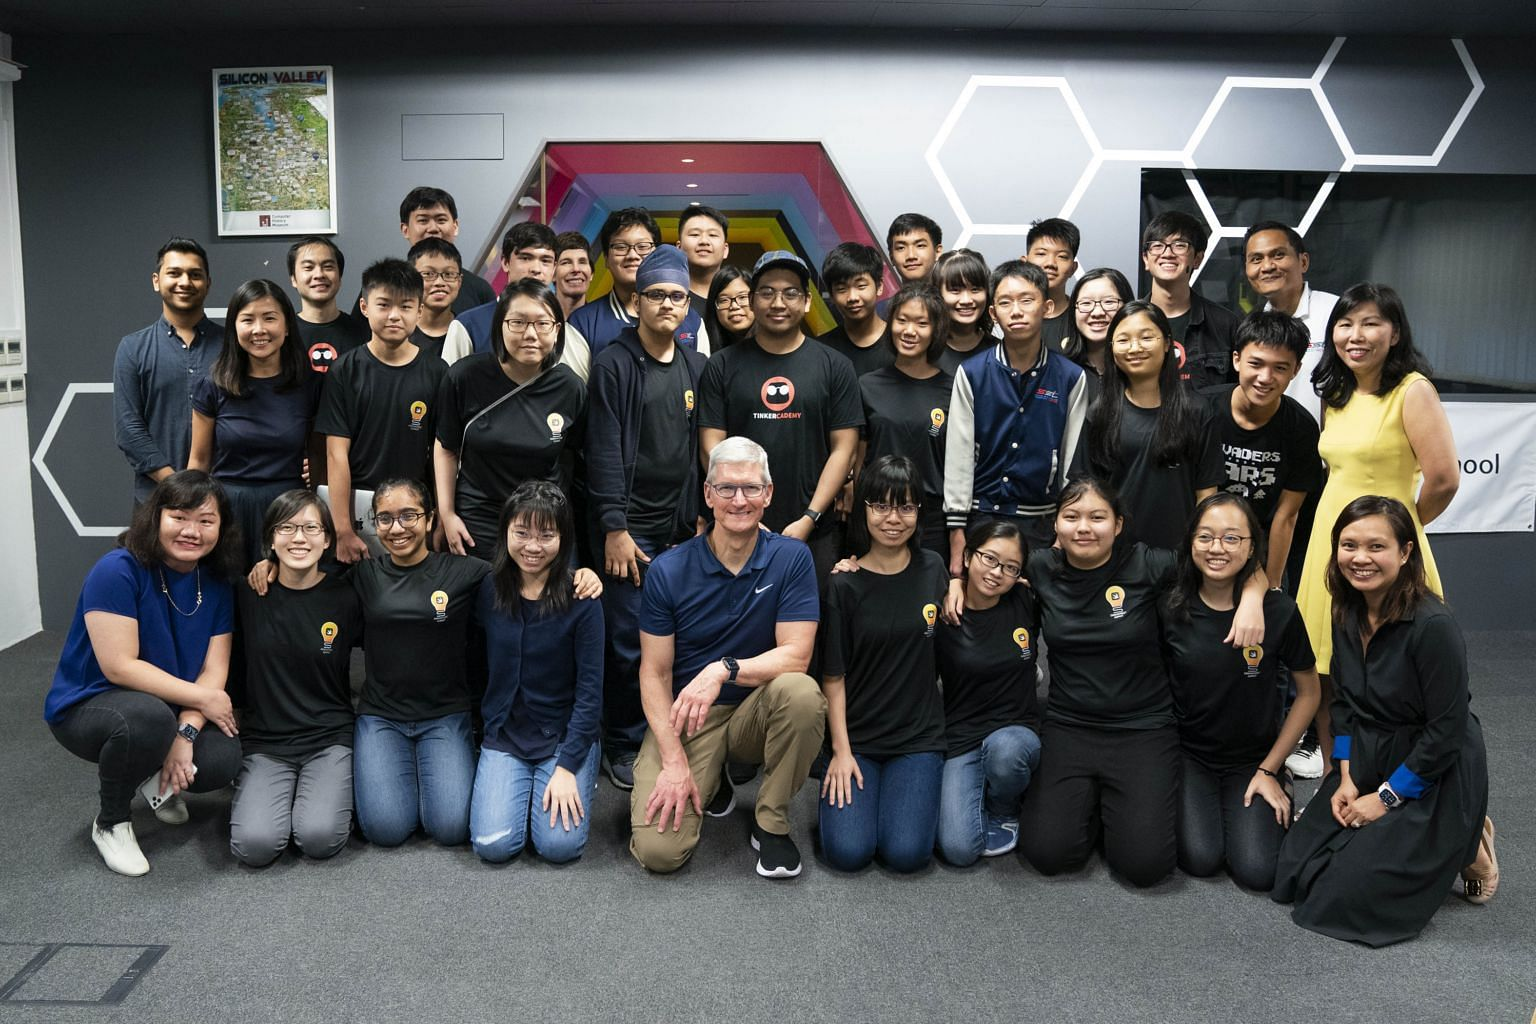 Apple chief executive Tim Cook with some of the 100 graduates of the Swift Accelerator programme on Dec 11, 2019.  PHOTO: APPLE